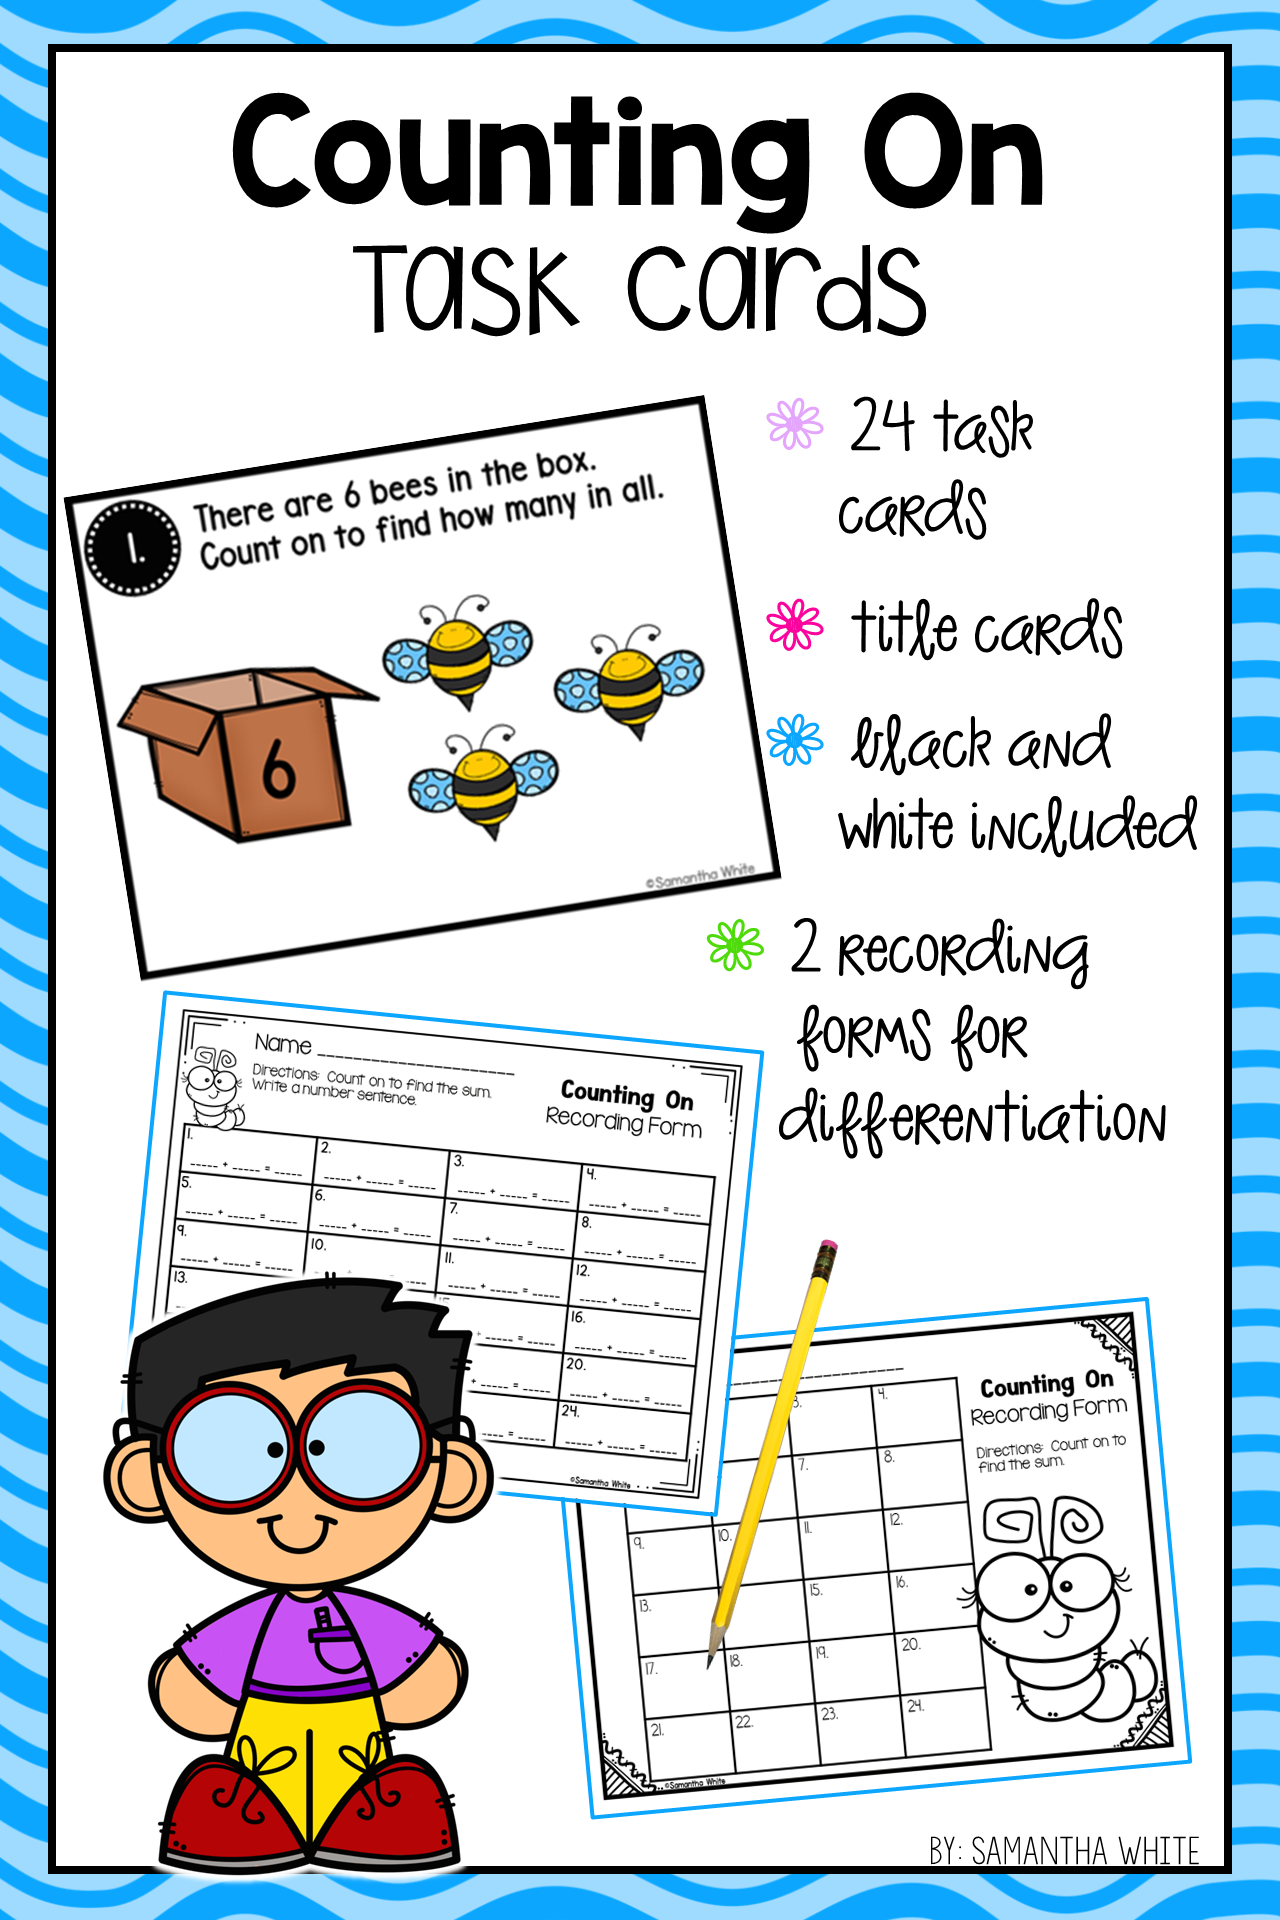 Reinforce The Counting On Strategy With This Set Of Task Cards That Uses Pictures For Pract Task Cards Elementary School Math Activities Elementary School Math [ 1920 x 1280 Pixel ]